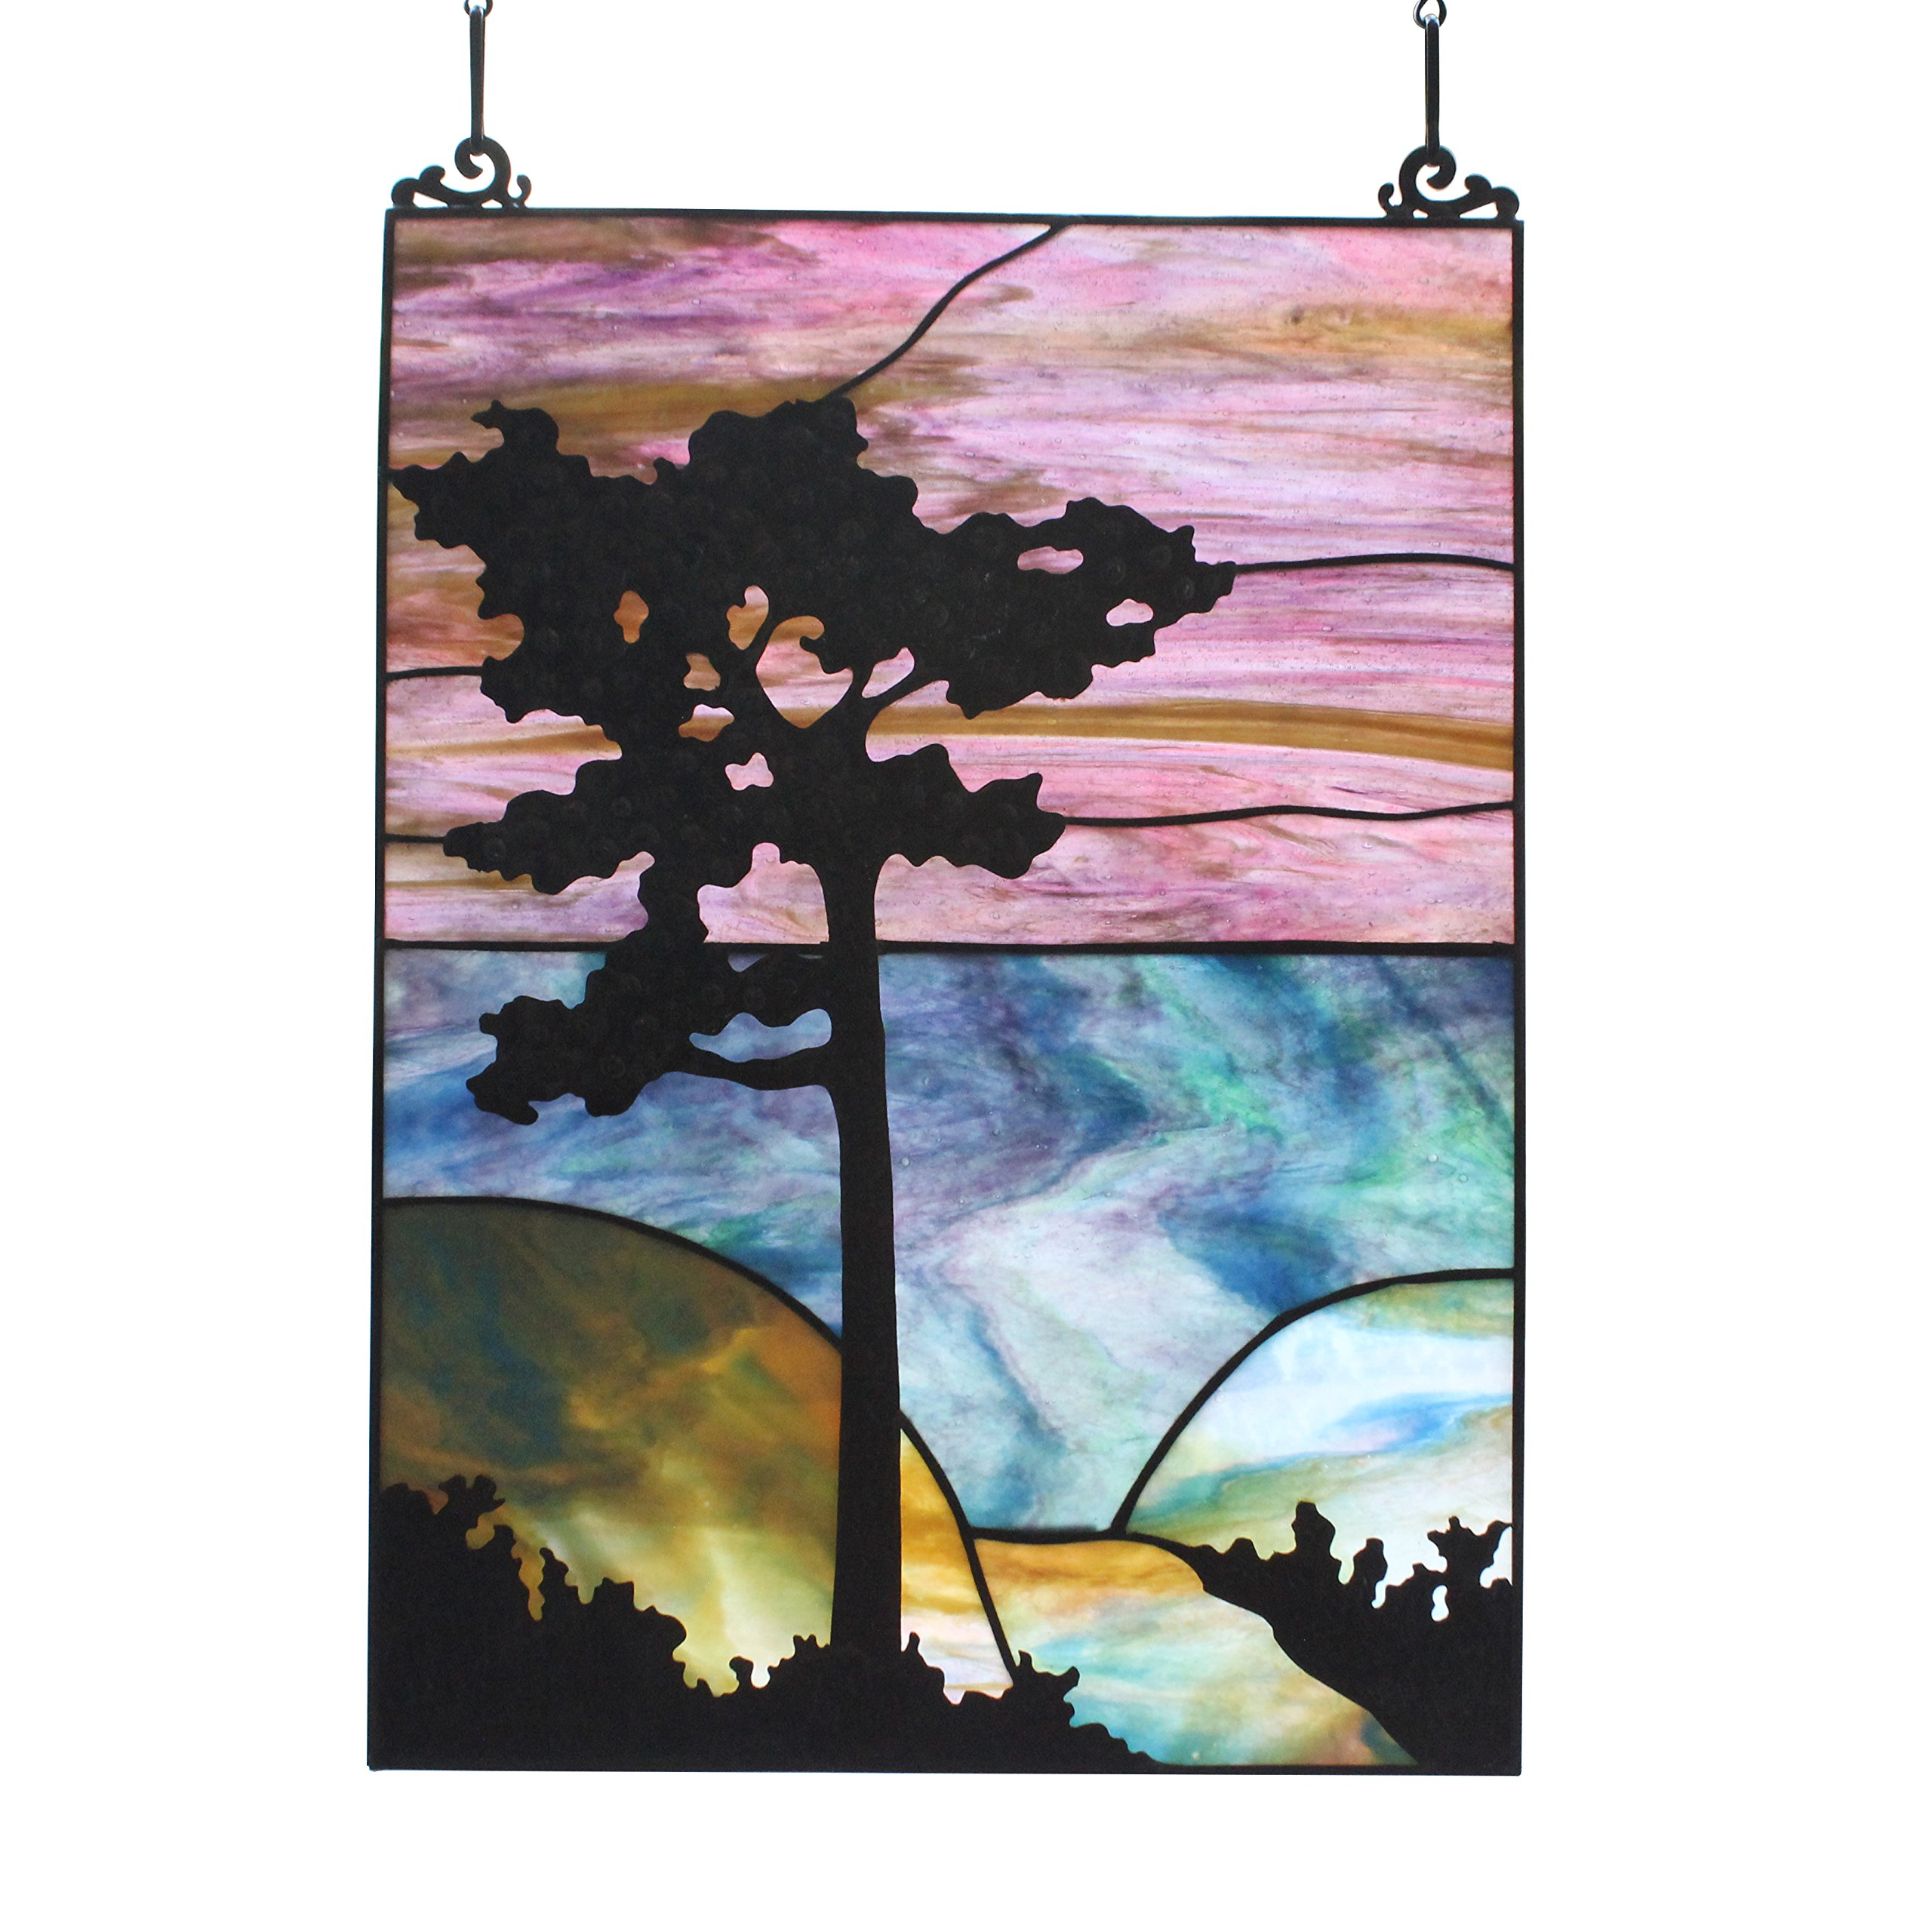 HF-99M Tiffany Style Stained Glass Tree Abstract Style Rectangular Window Hanging Glass Panel Sun Catcher, 4331 cm by Gweat Window Hanging